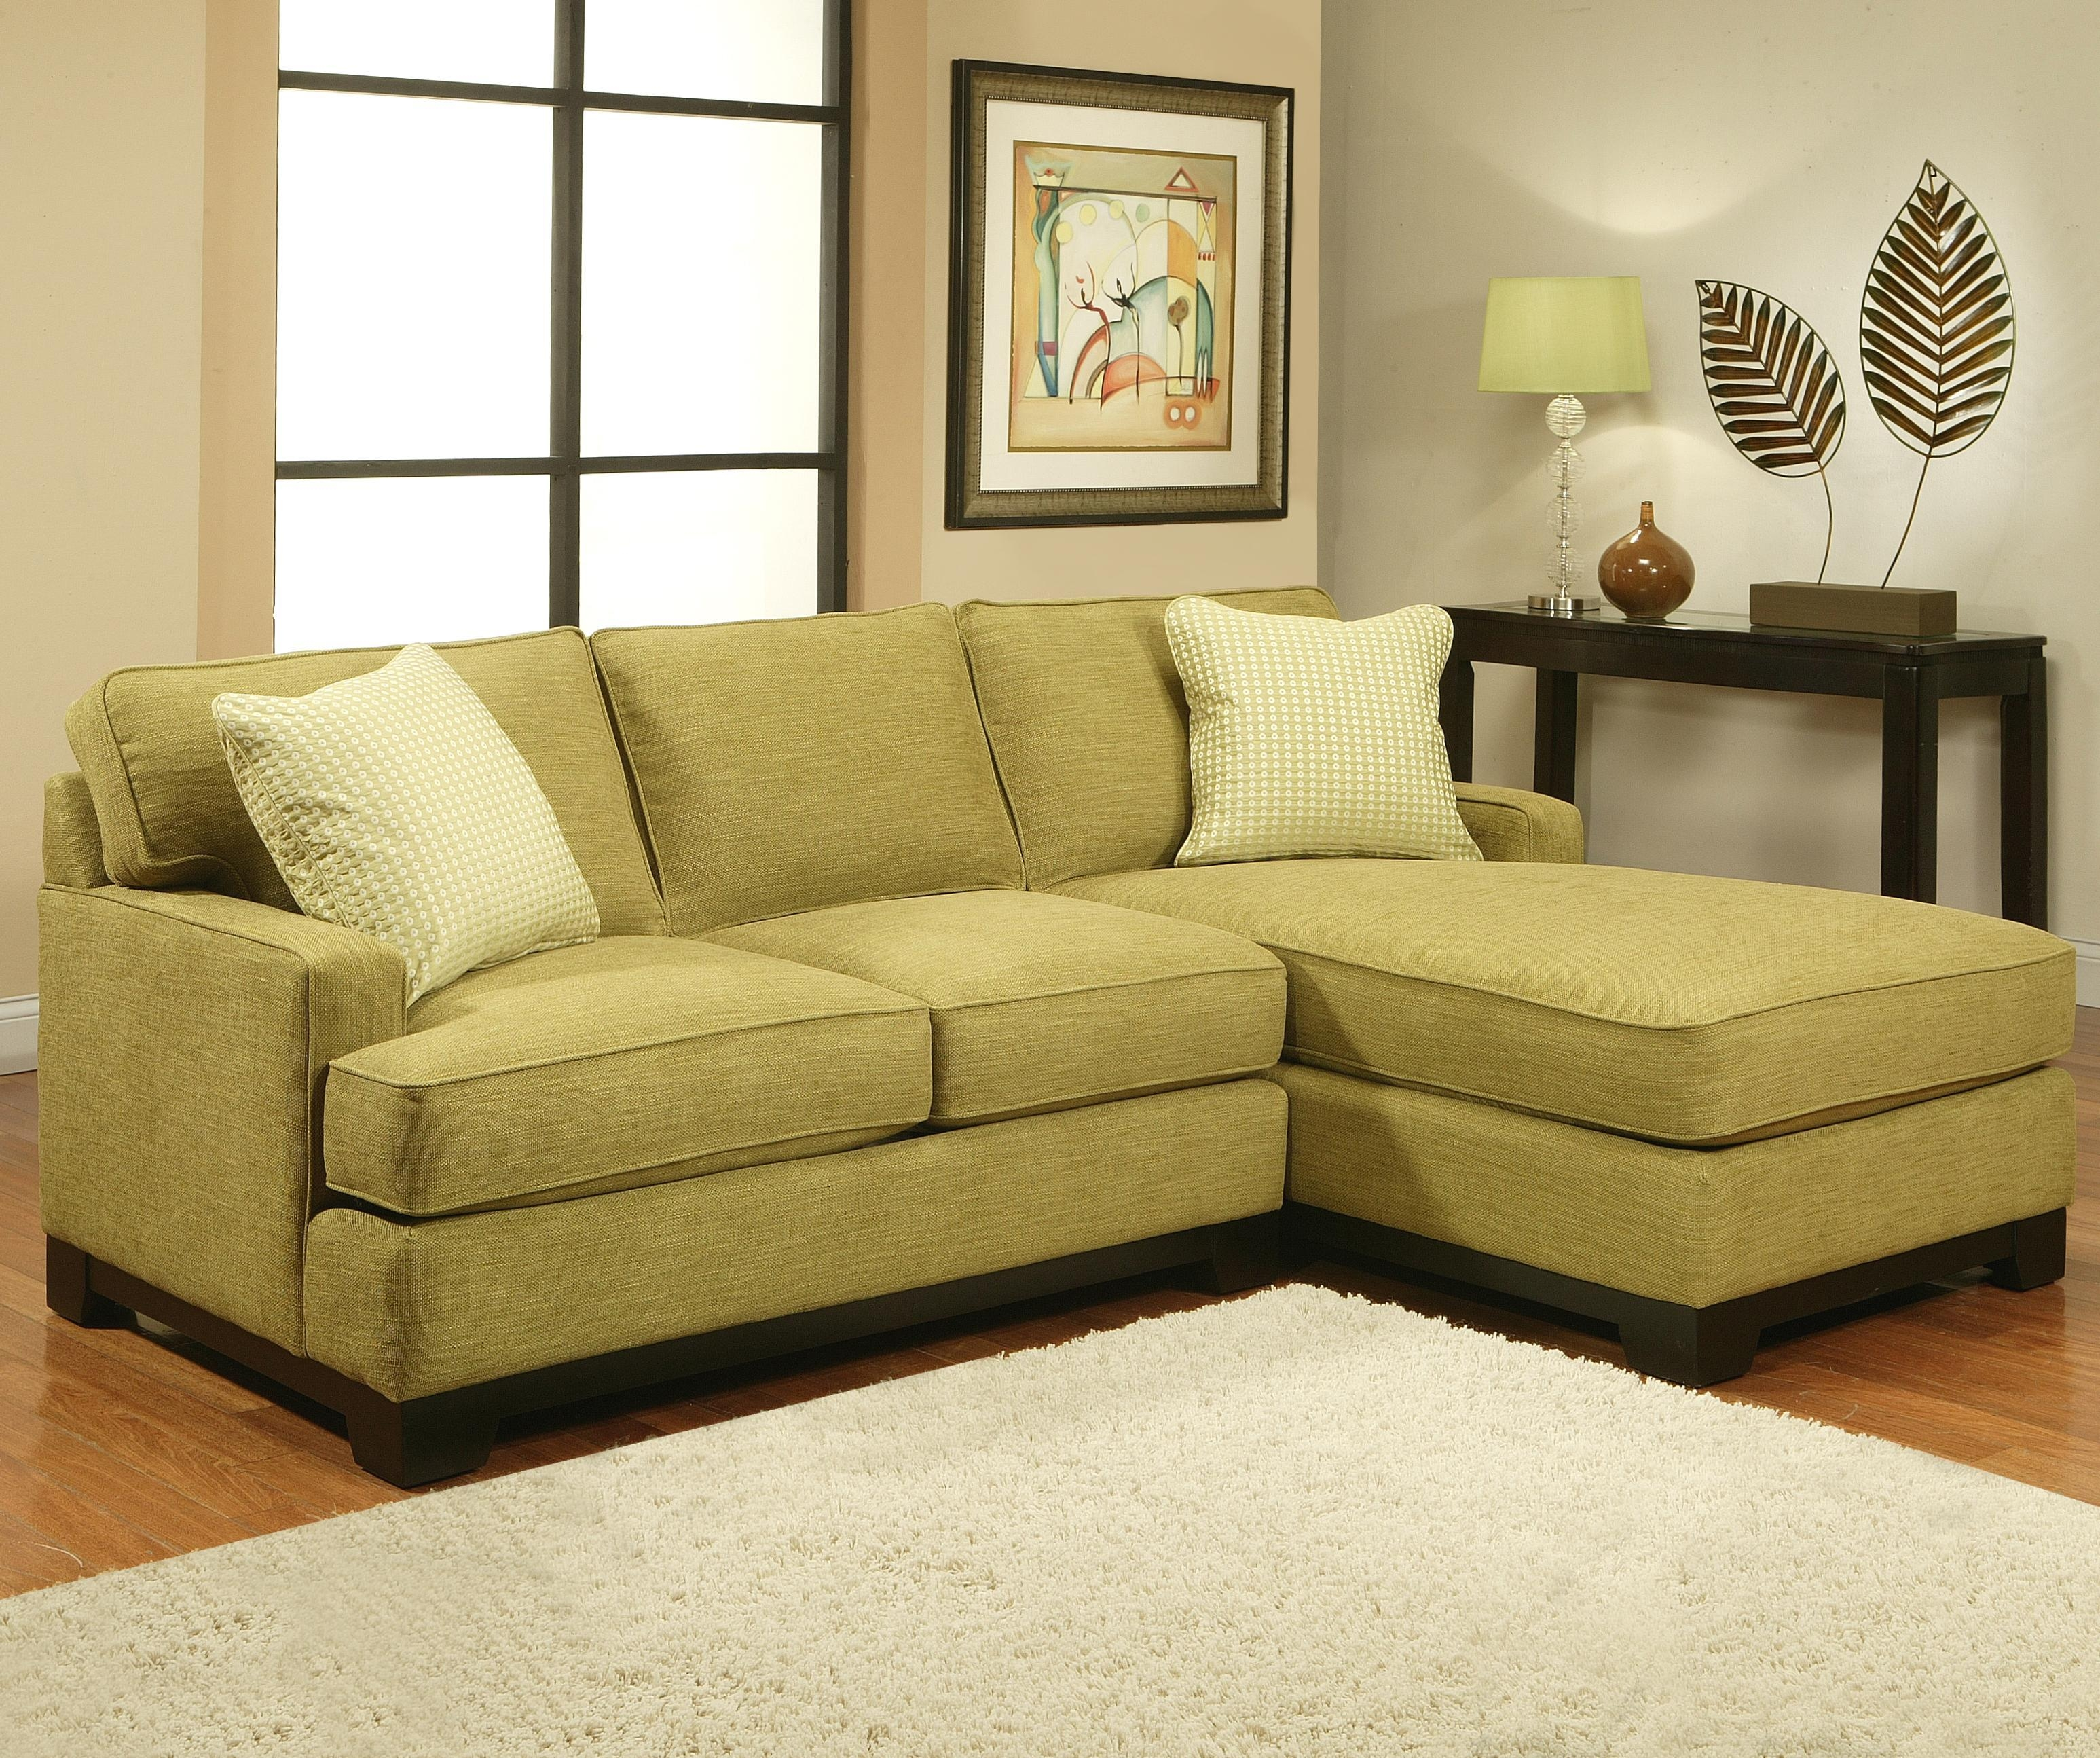 20 Collection Of Jonathan Louis Sectional Sofa Ideas